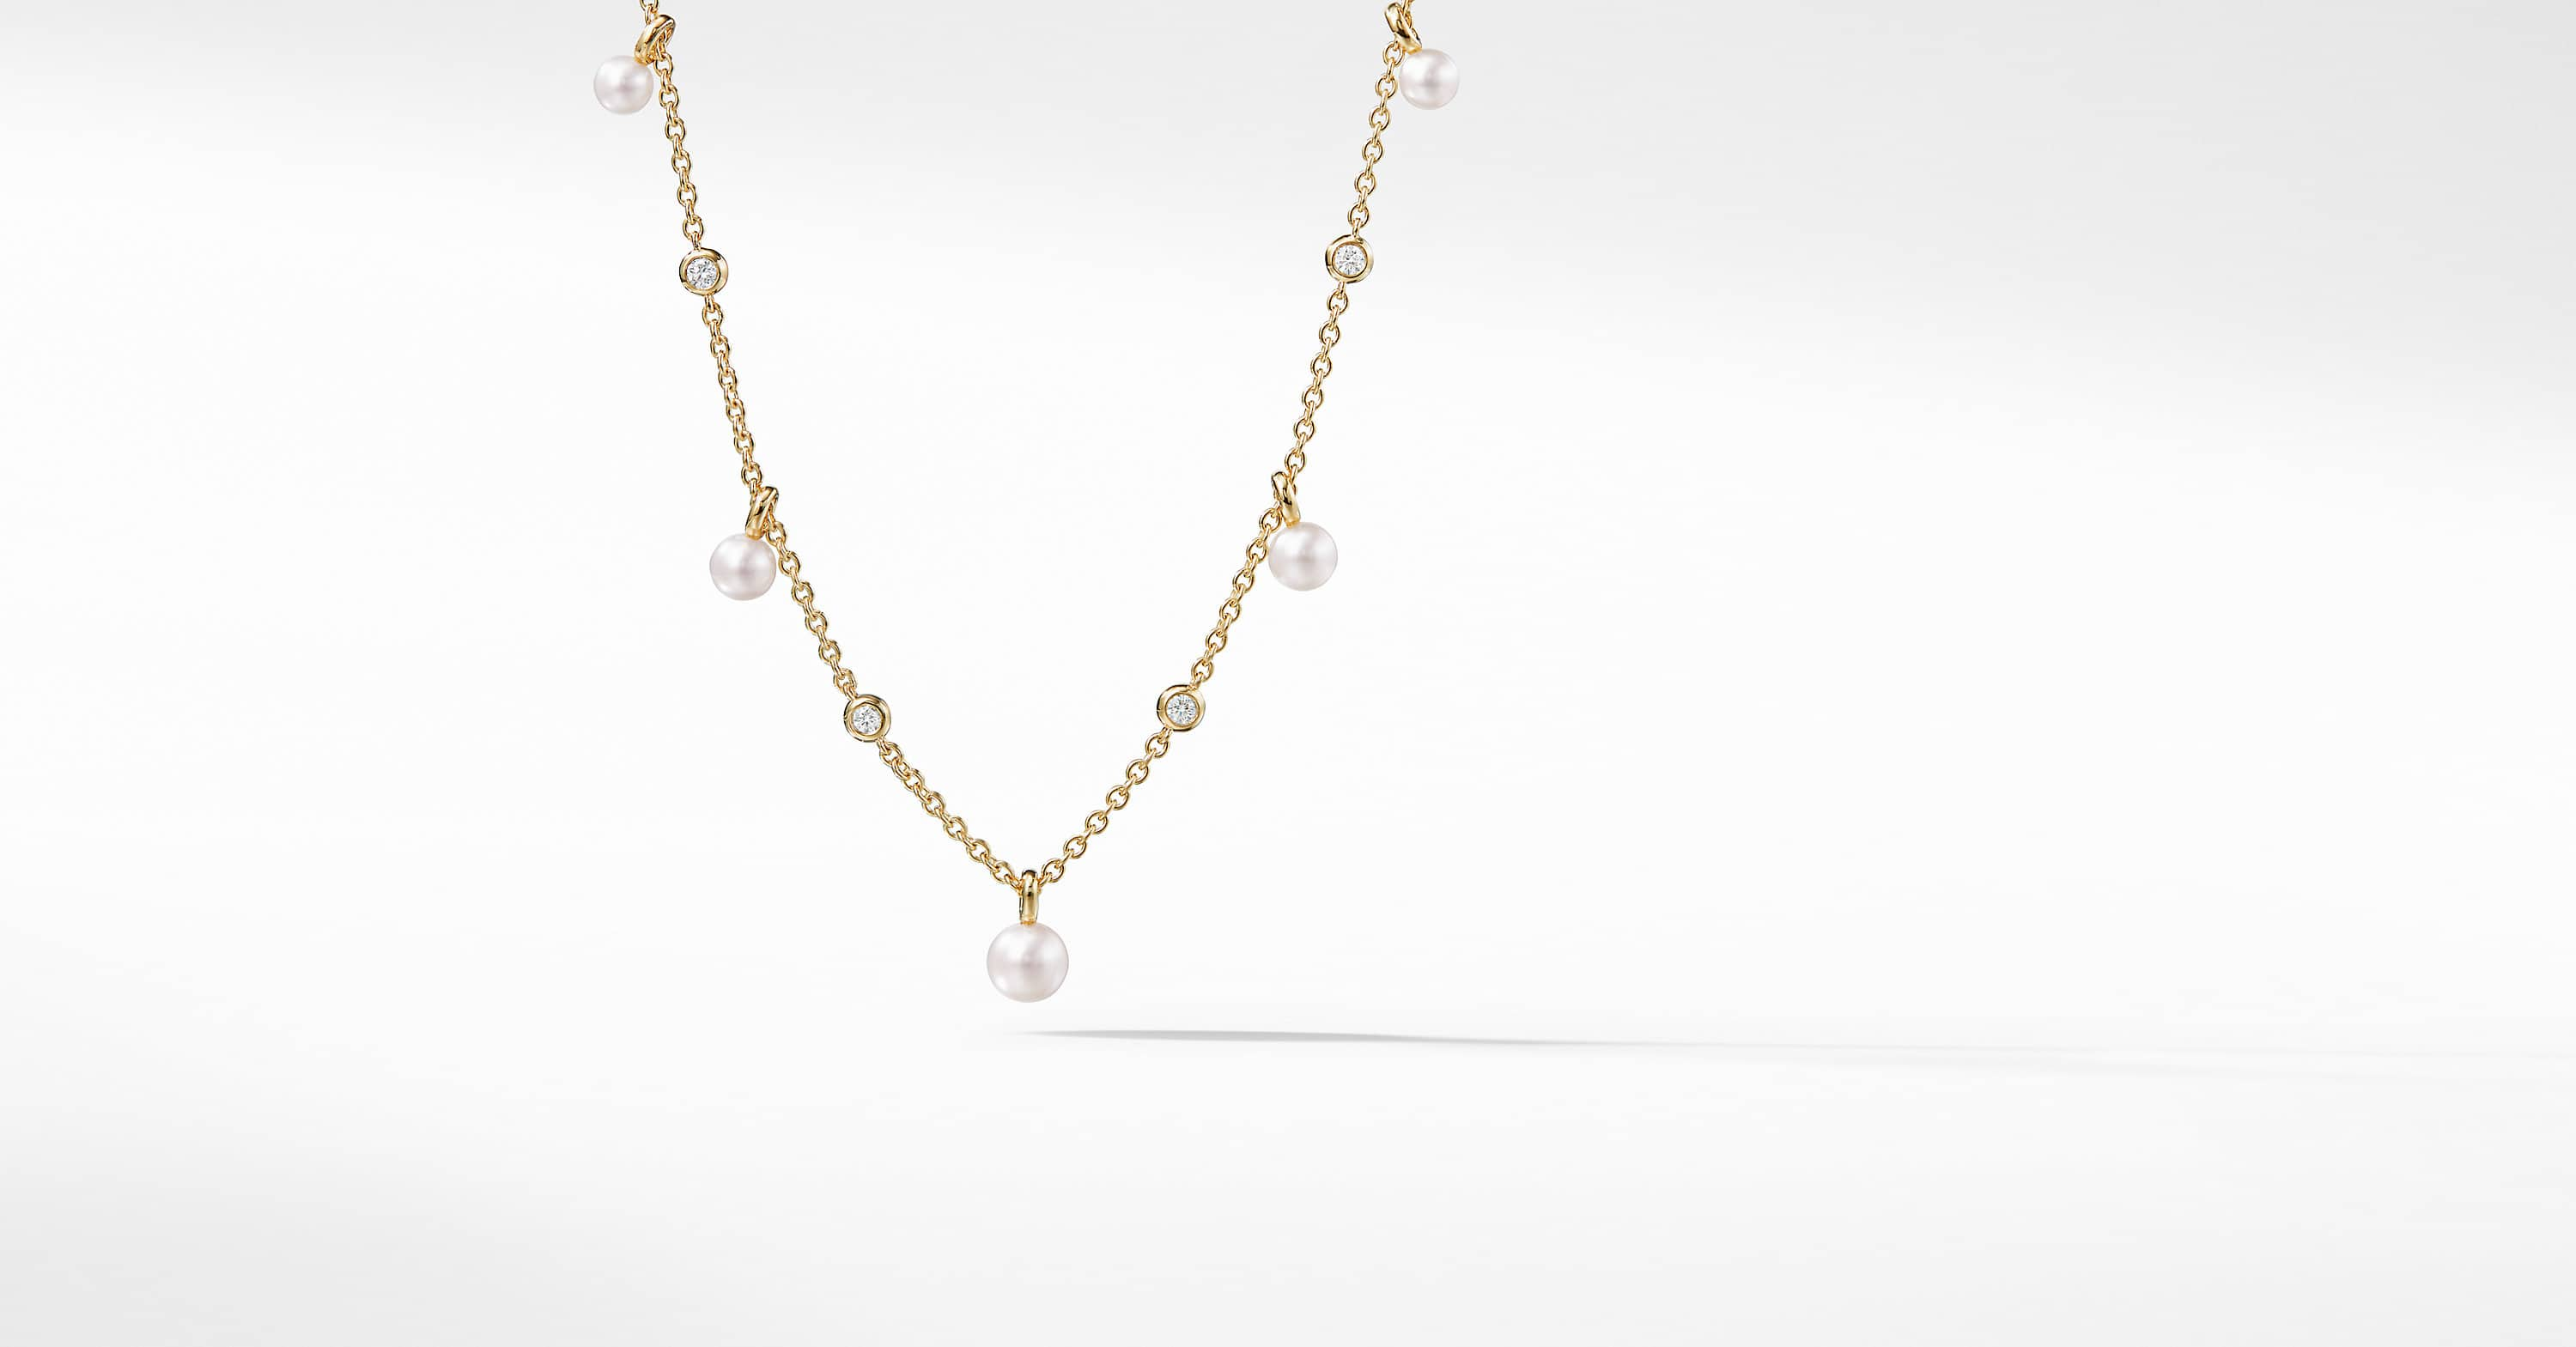 Petite Perle Fringe Necklace with Pearls and Diamonds in 18K Gold